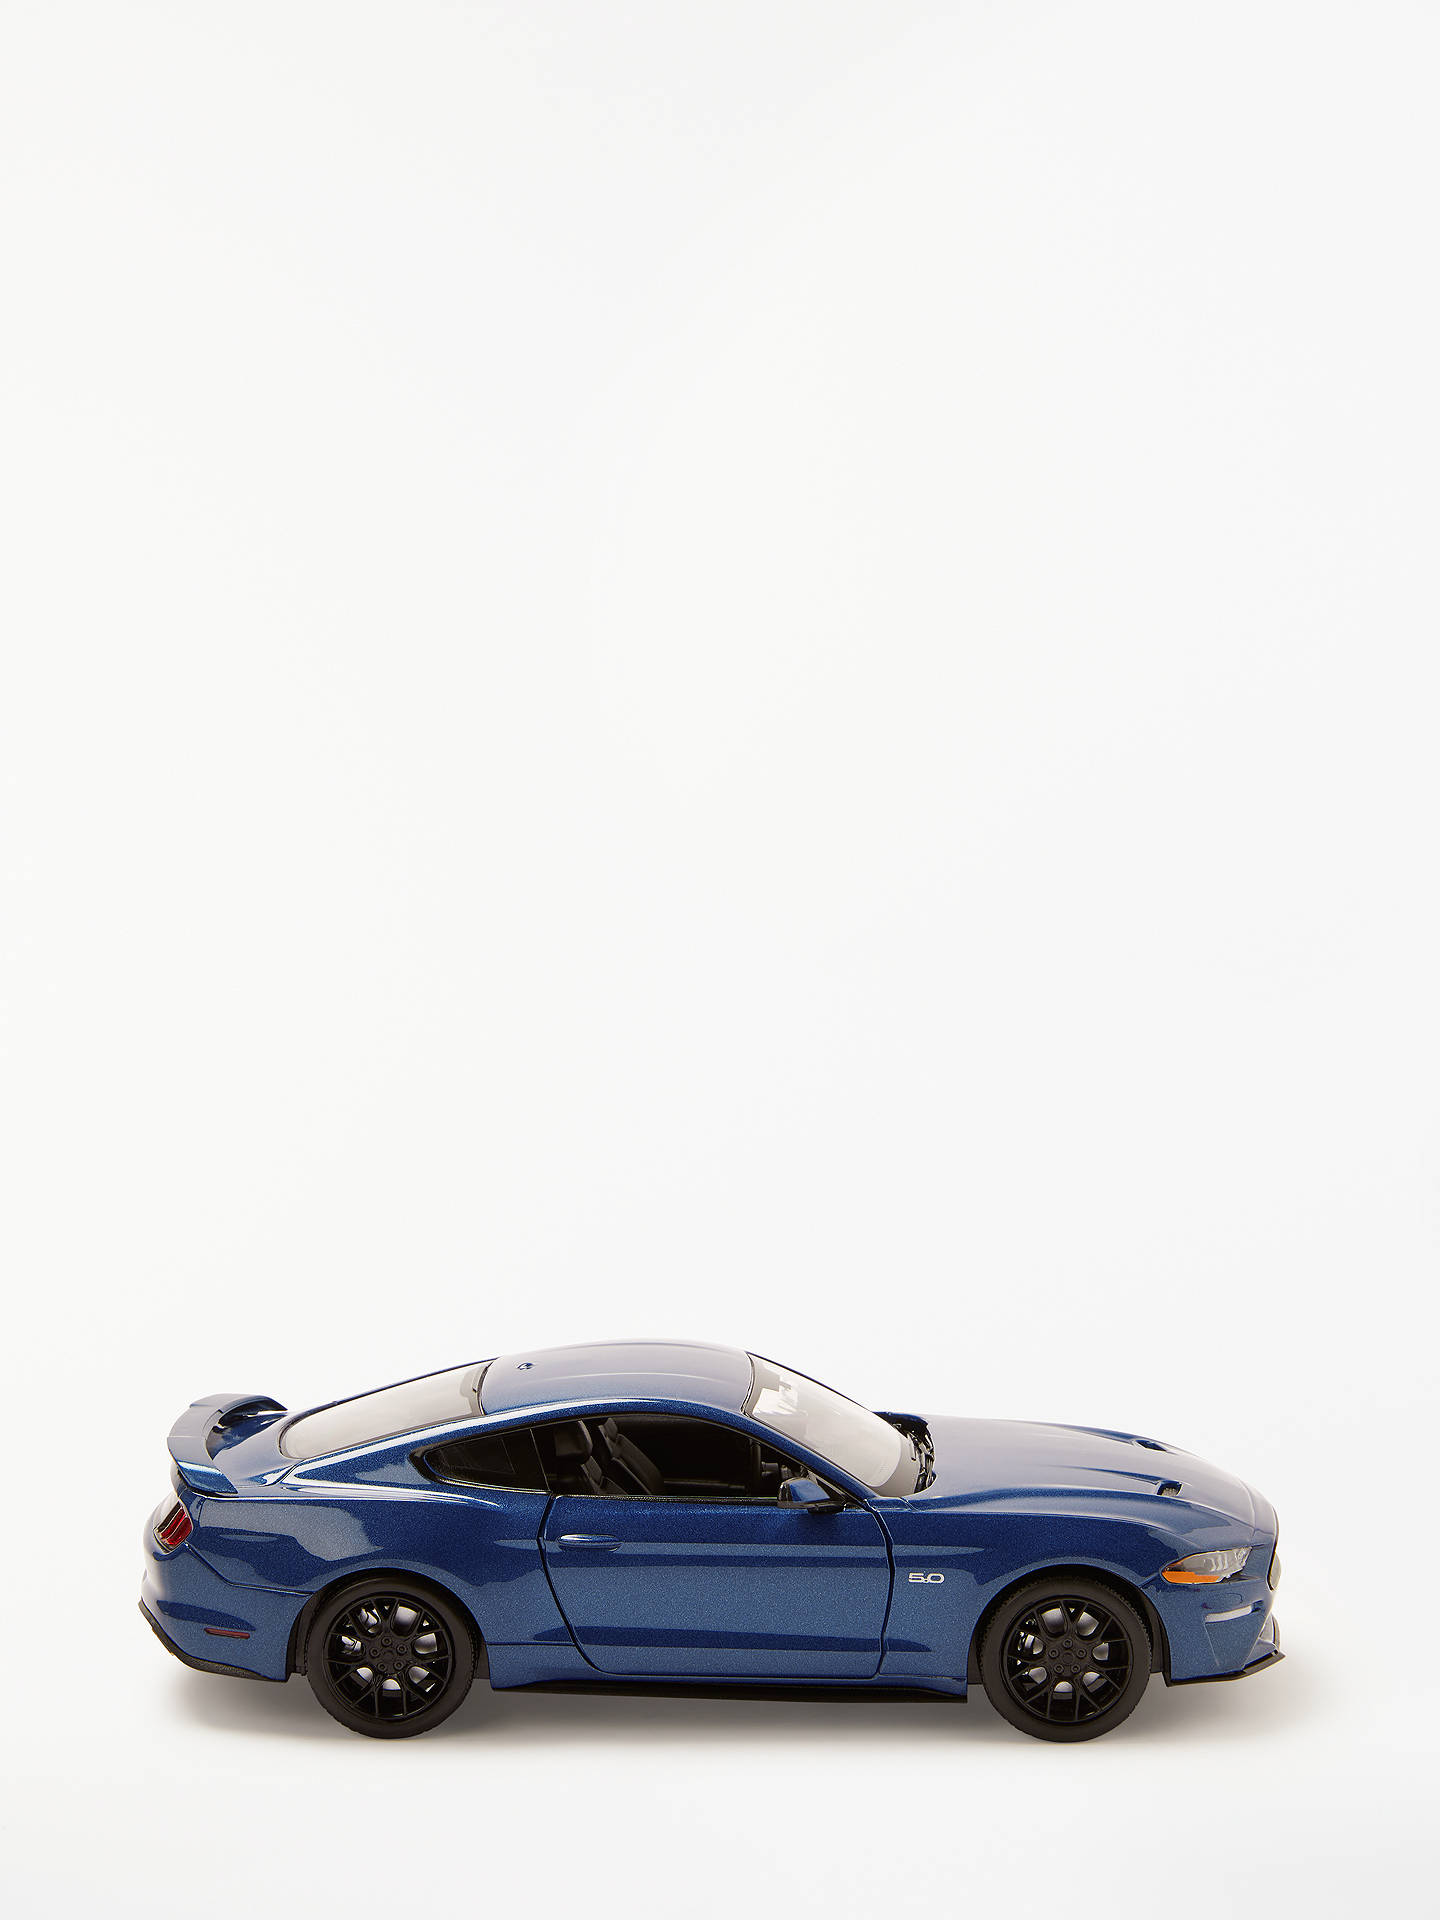 Buy john lewis partners 124 2018 ford mustang gt toy car online at